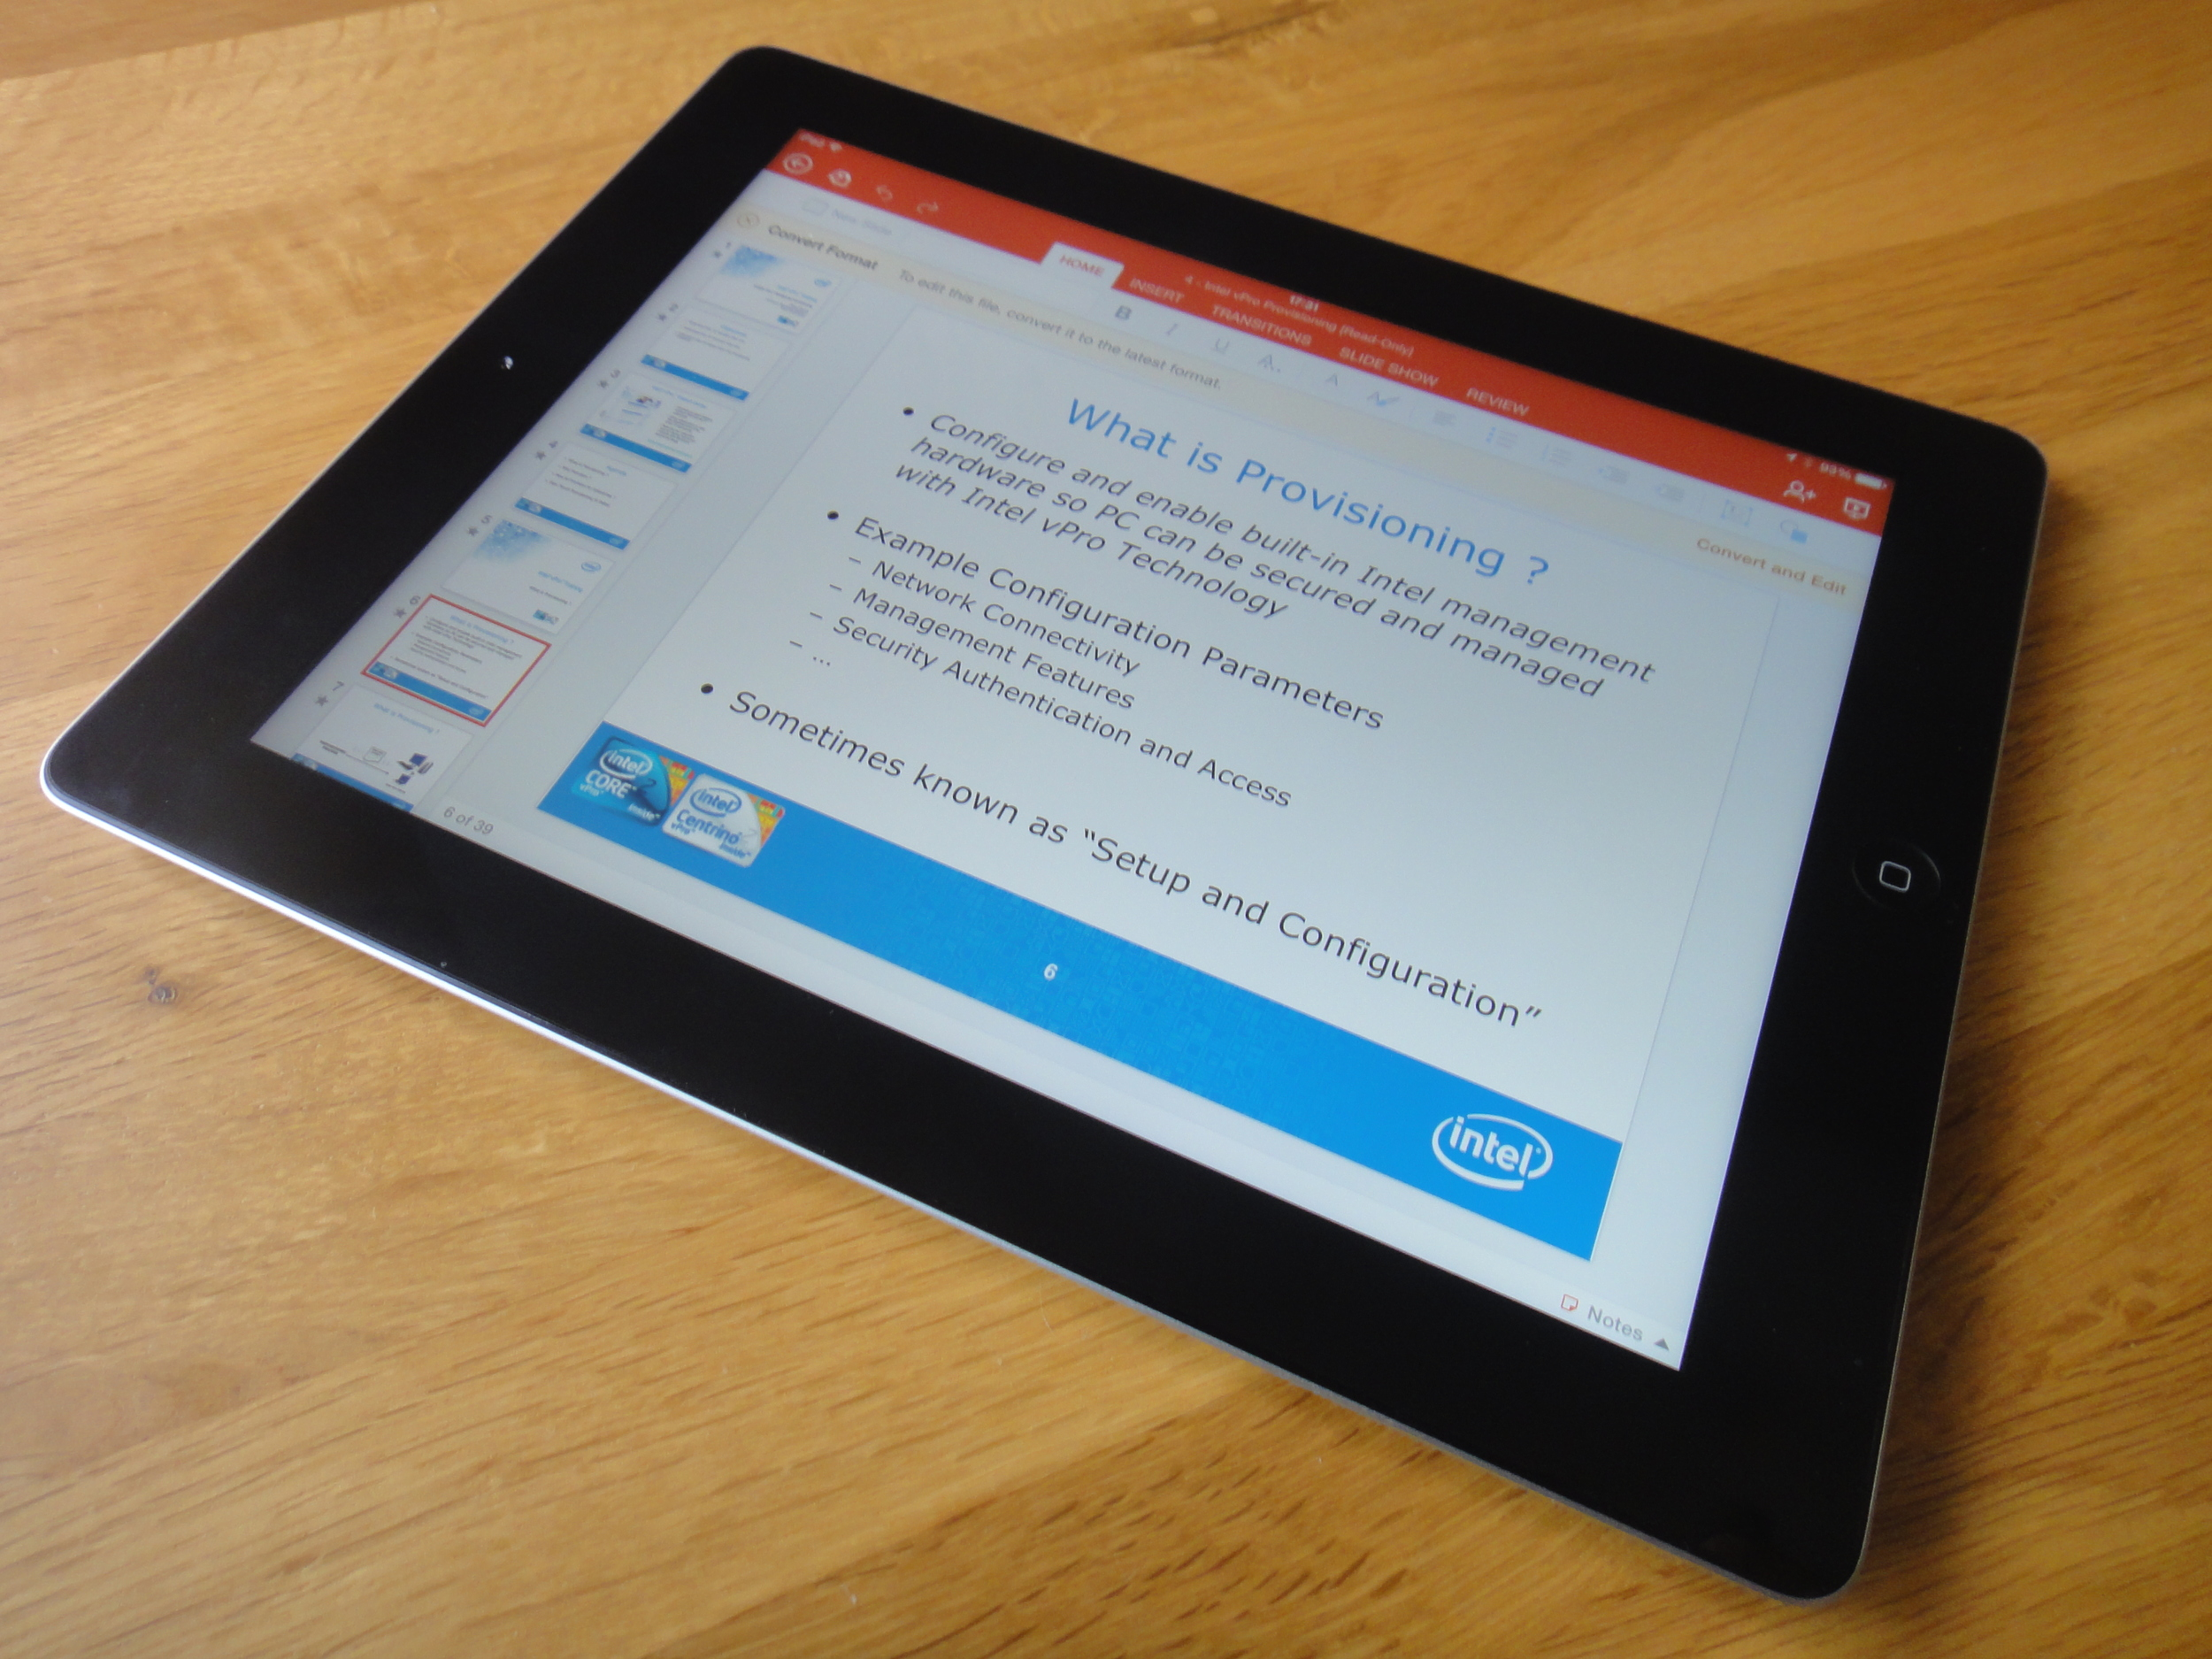 Once you've got a work in progress, PowerPoint is really useful on a tablet